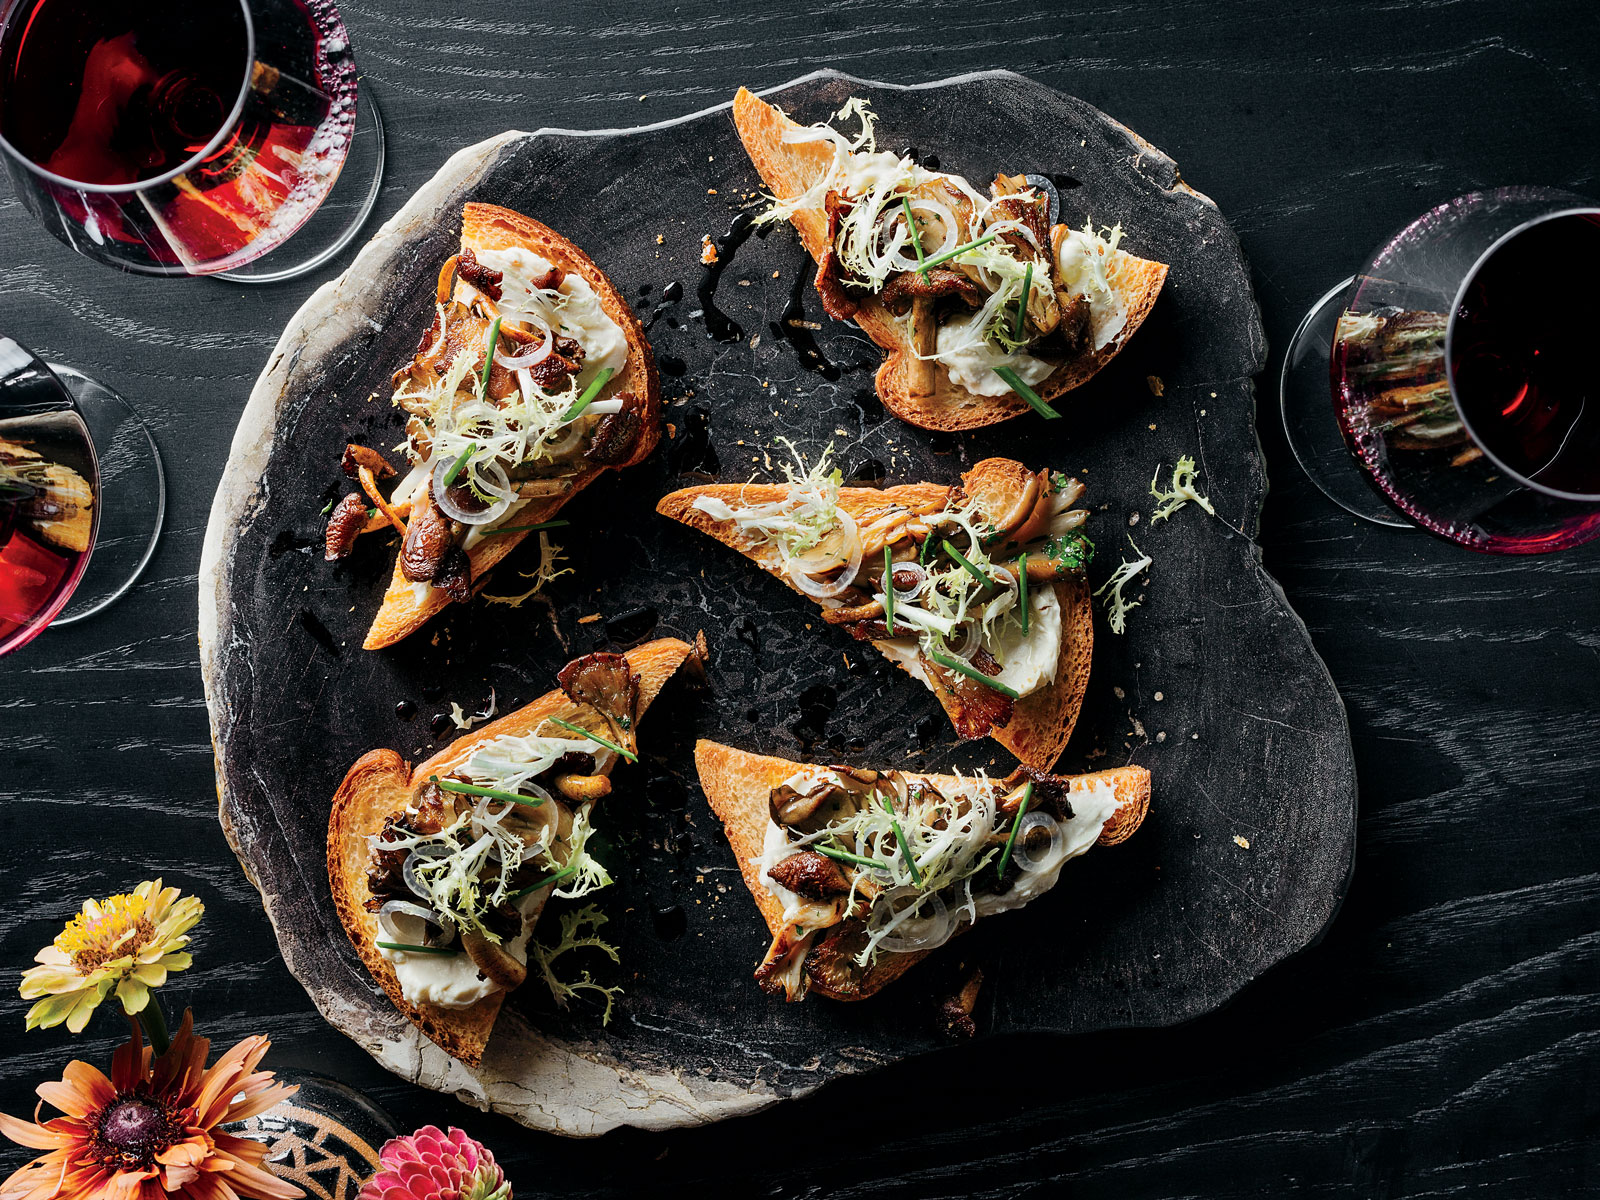 Mushroom Toasts with Delice de Bourgogne